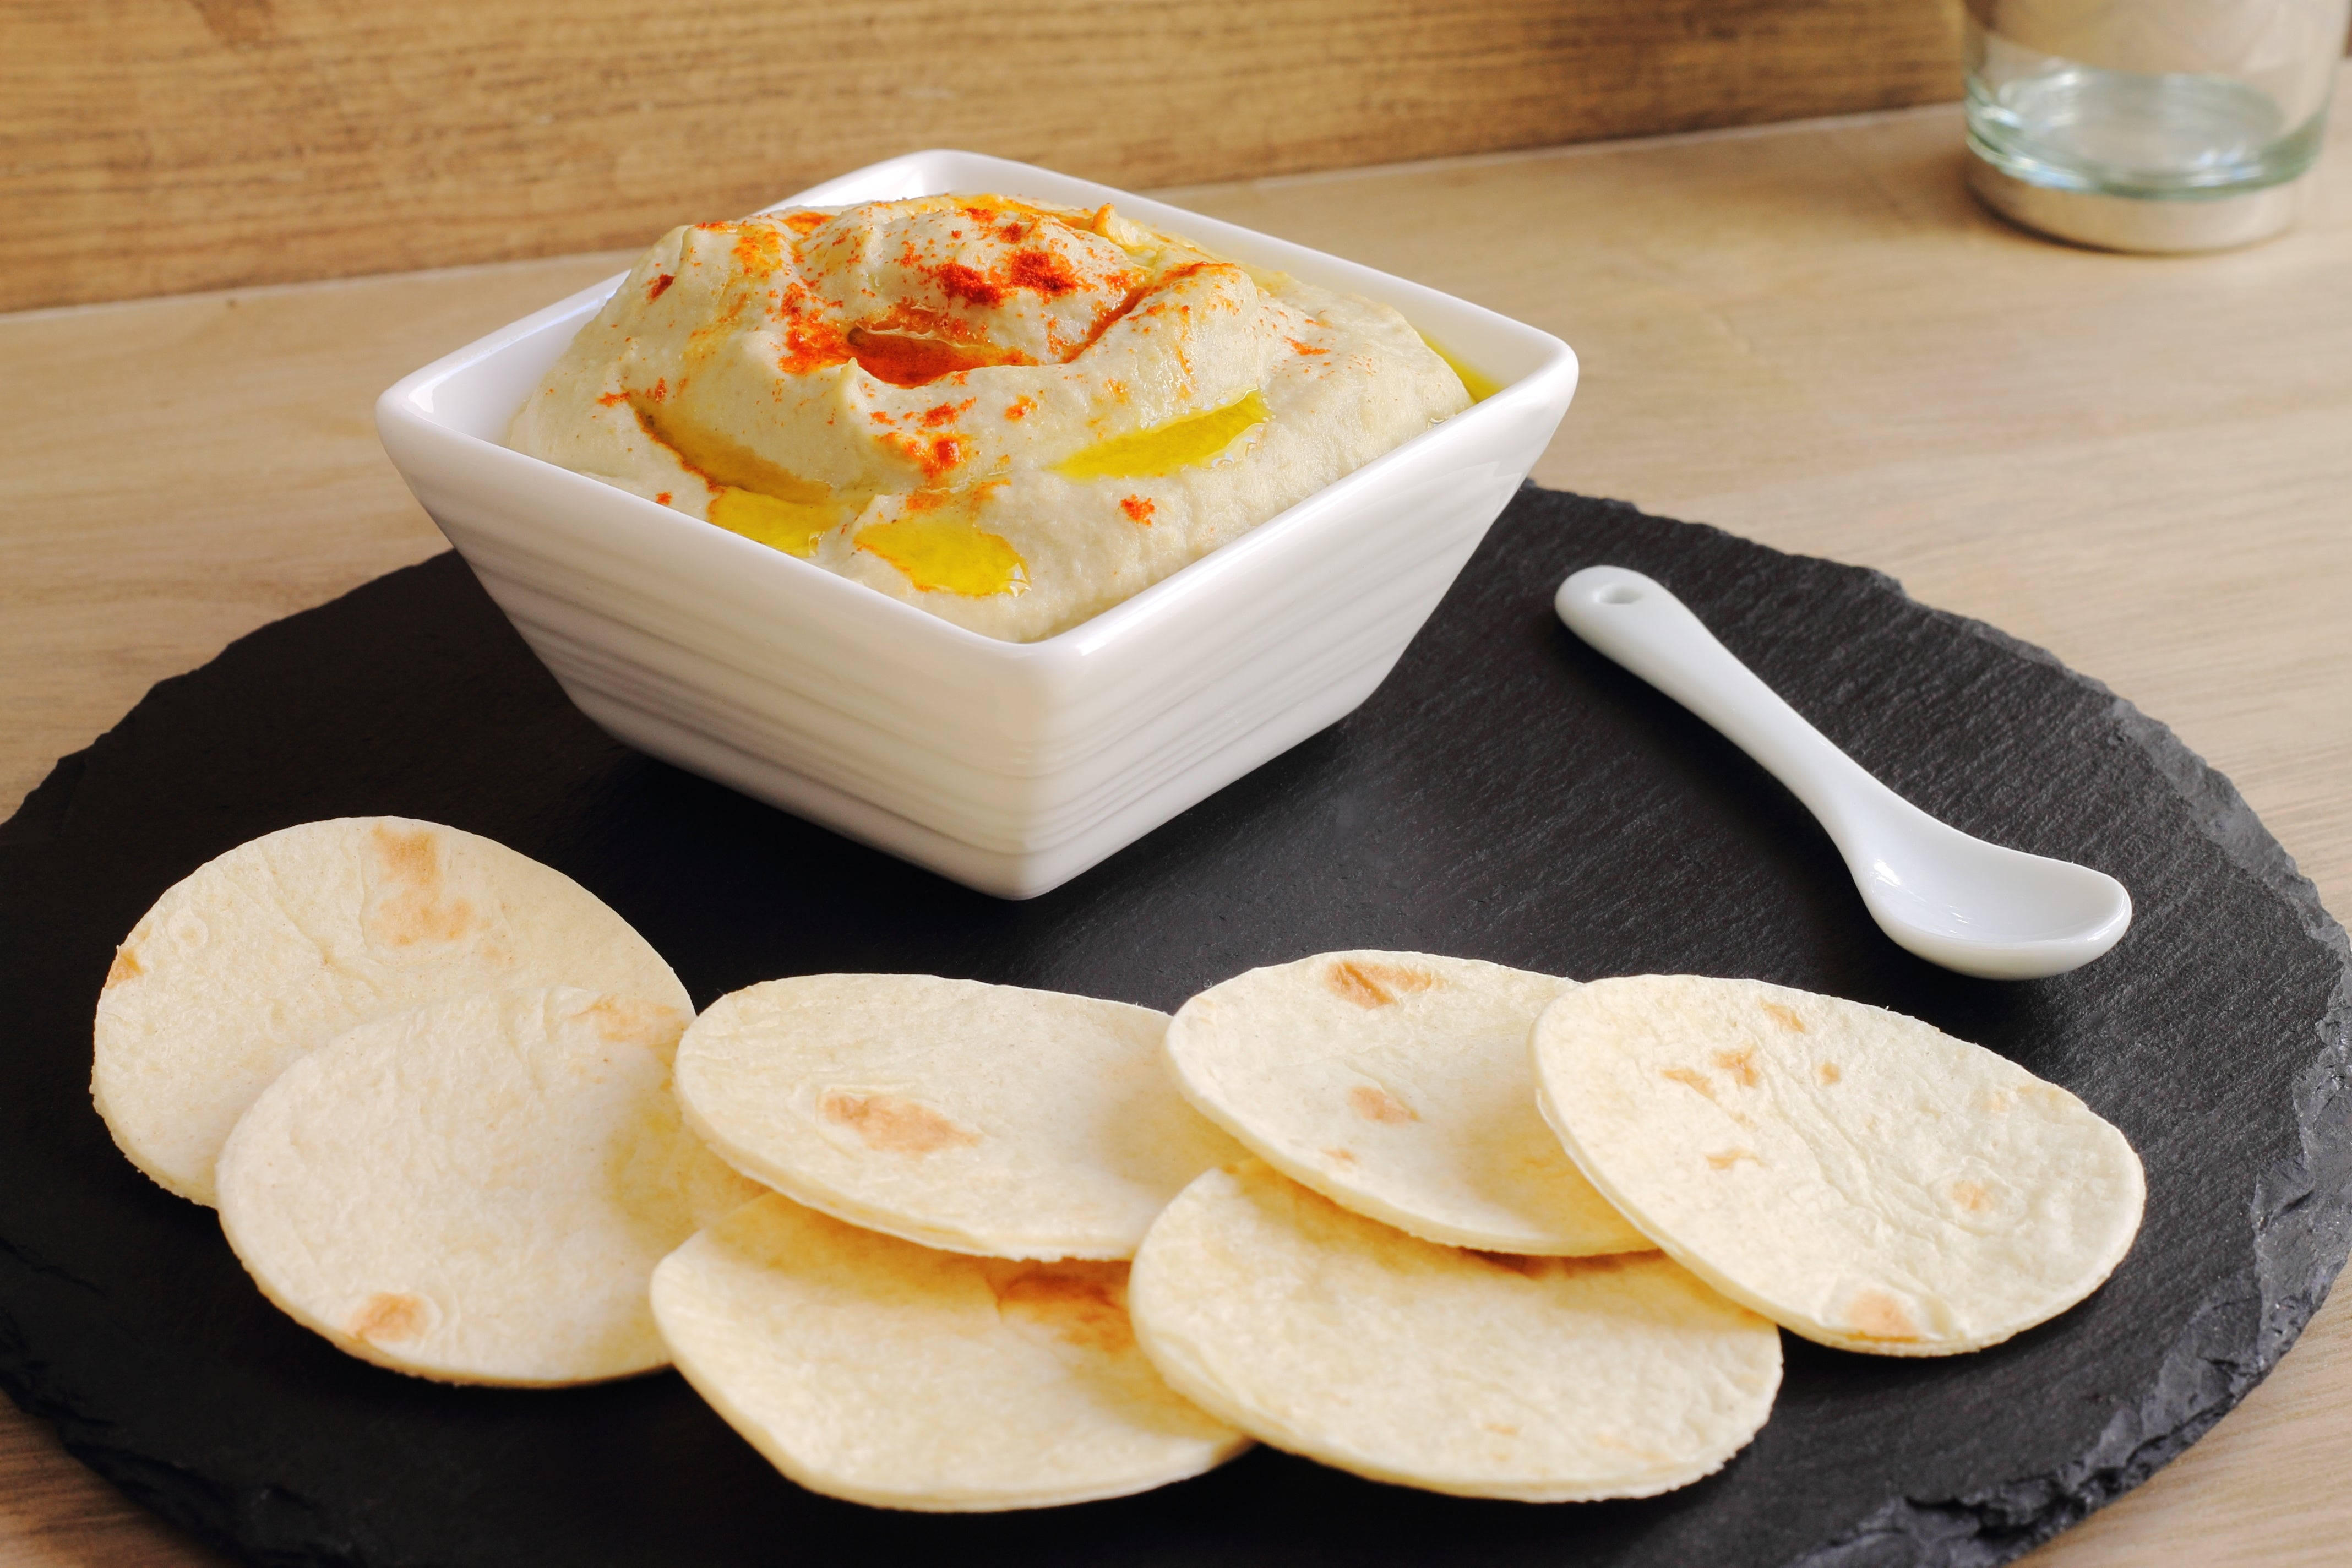 Baba ghanoush, traditional Arabic dip or spread with pita bread